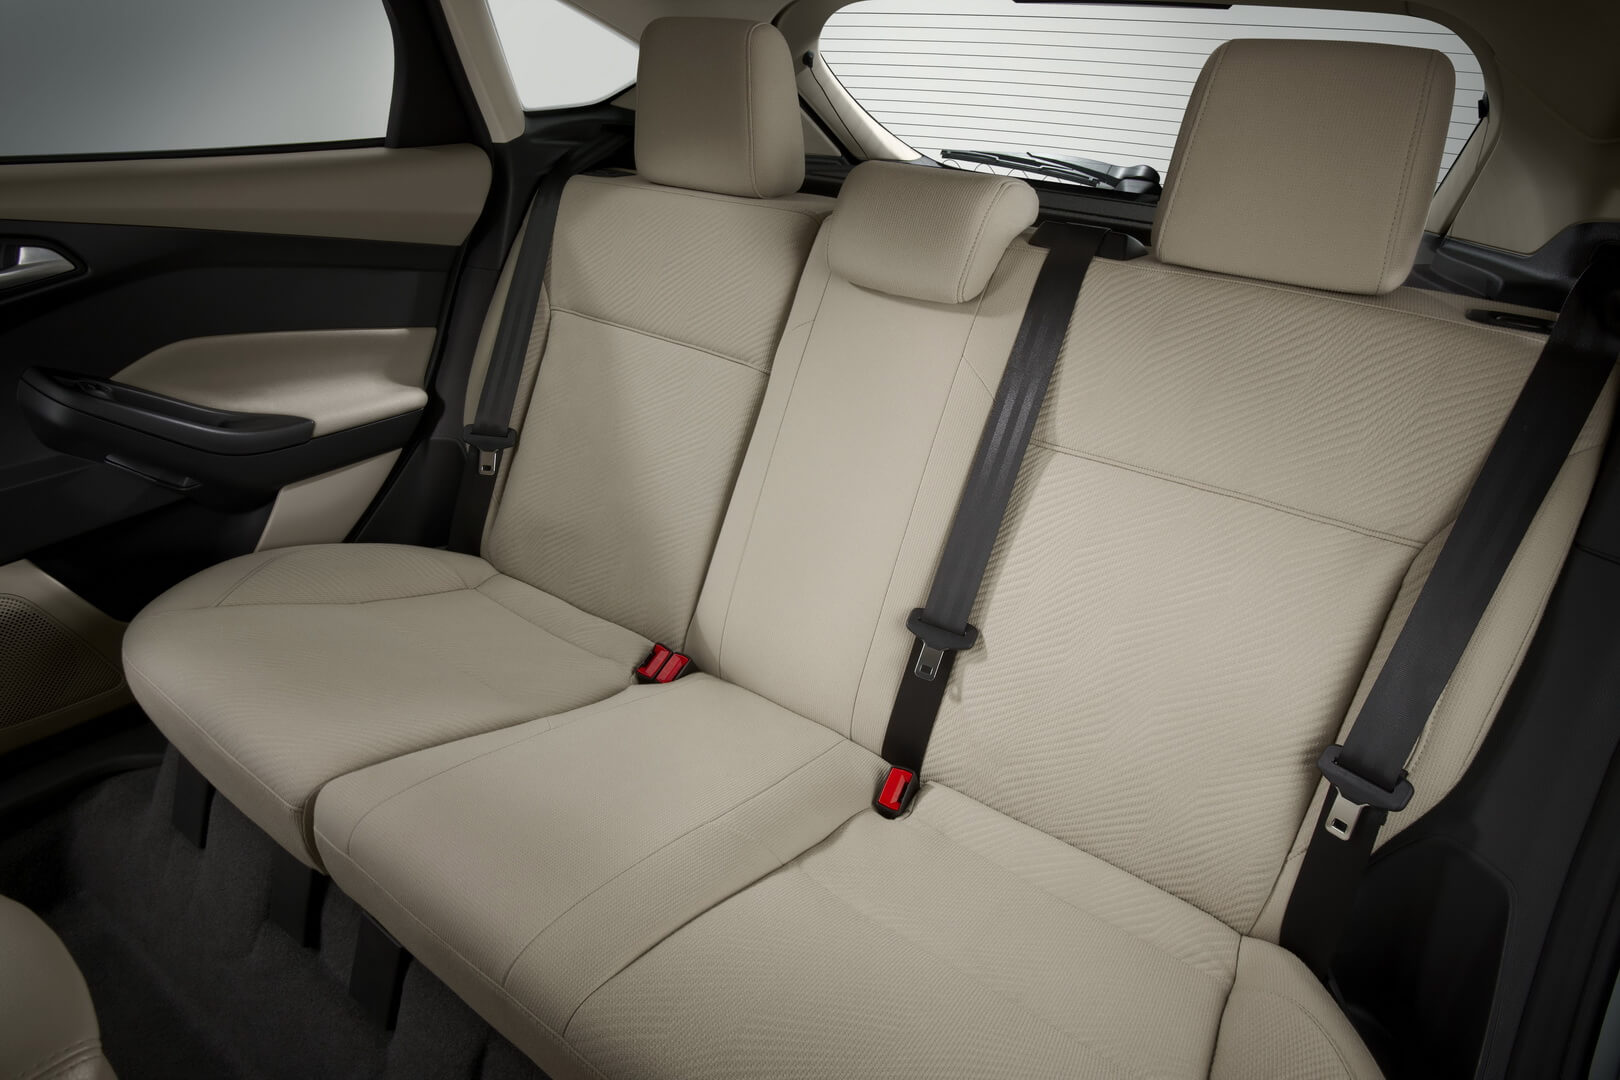 Ford Focus Electric 23kwh-interior-5